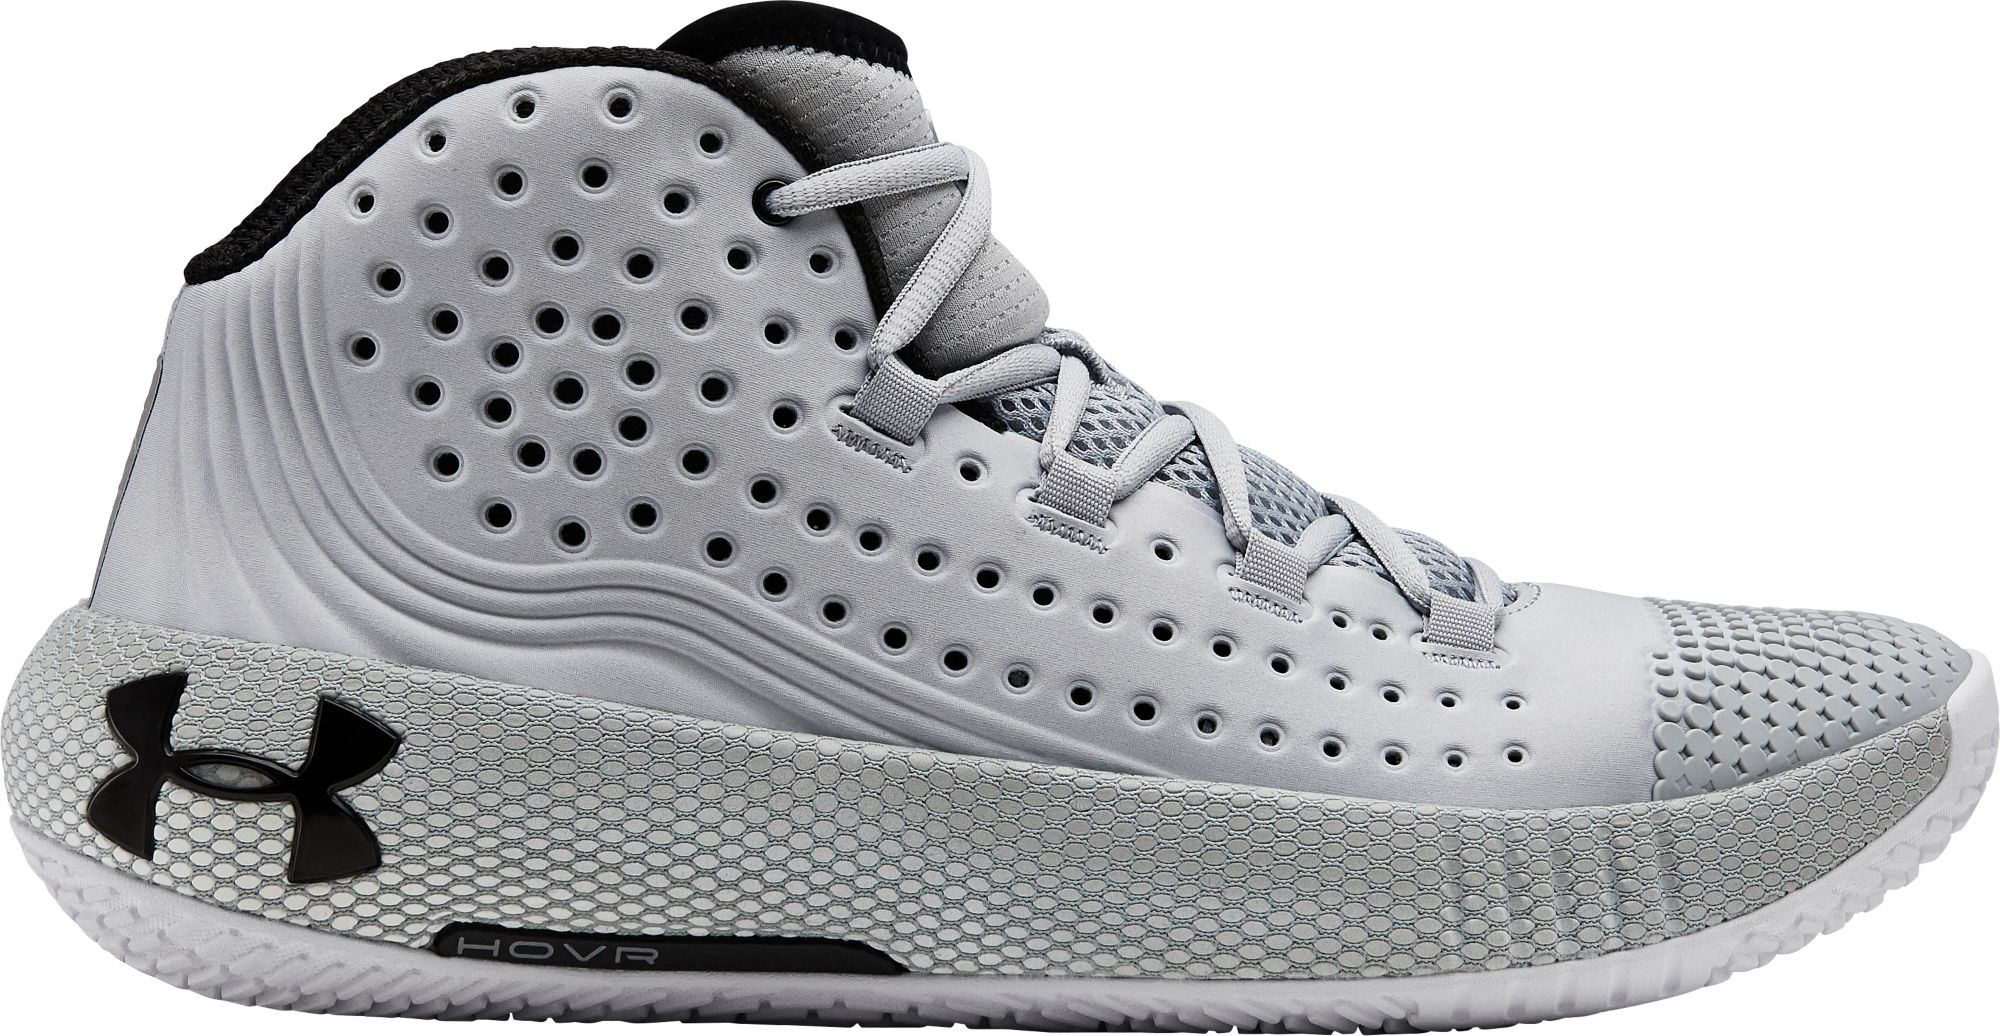 Under Armour Mens HOVR Havoc 2 Basketball Shoes